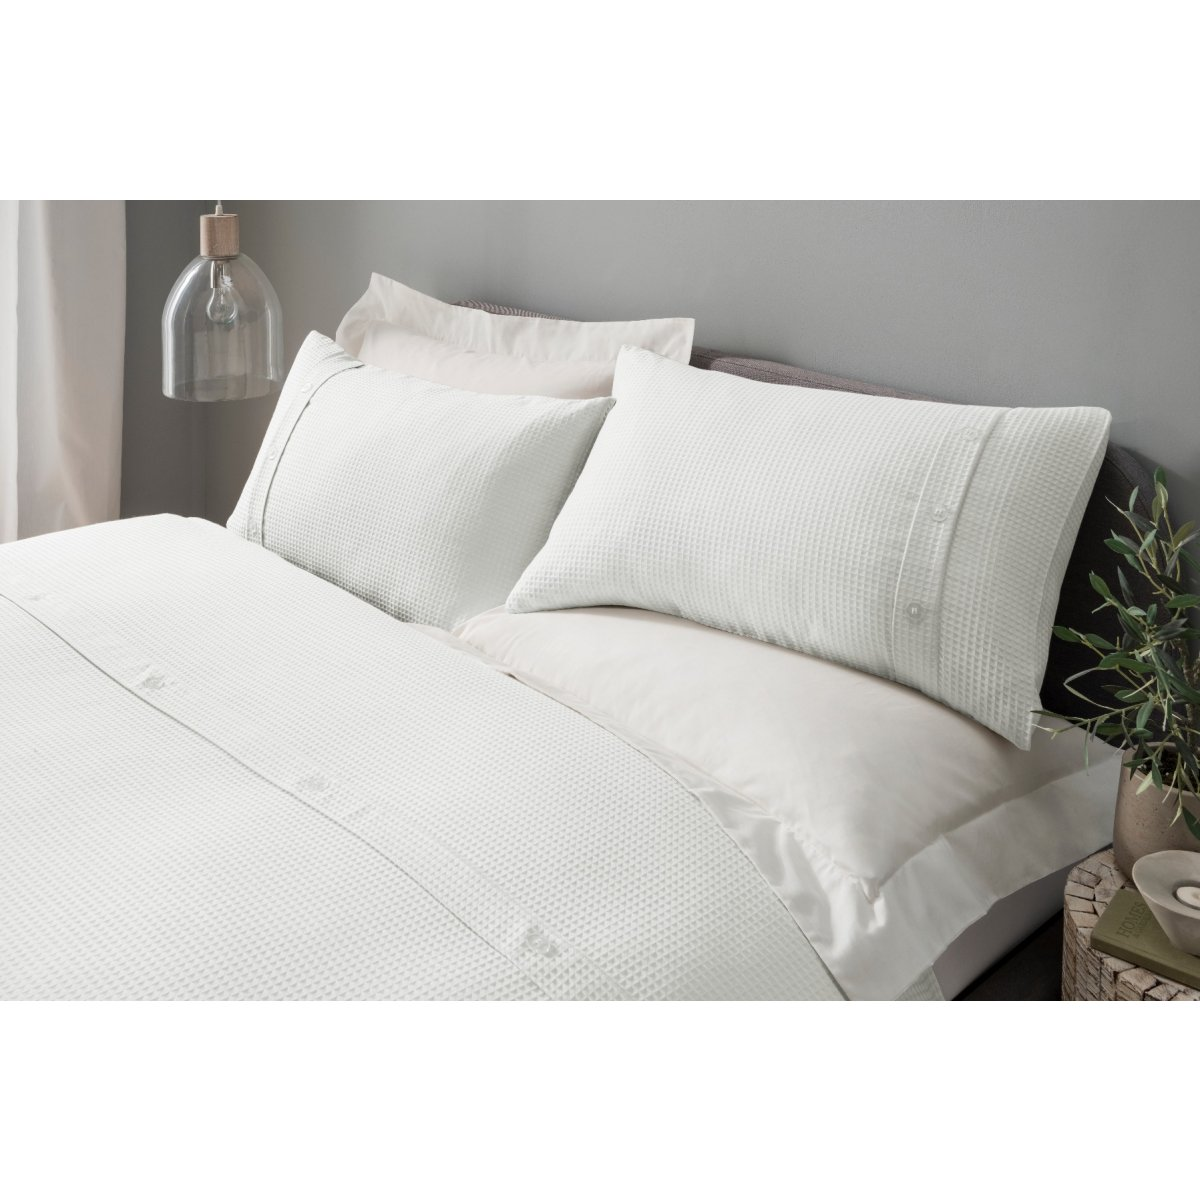 Waffle White Bedding - Duvet Cover and Pillowcase Set